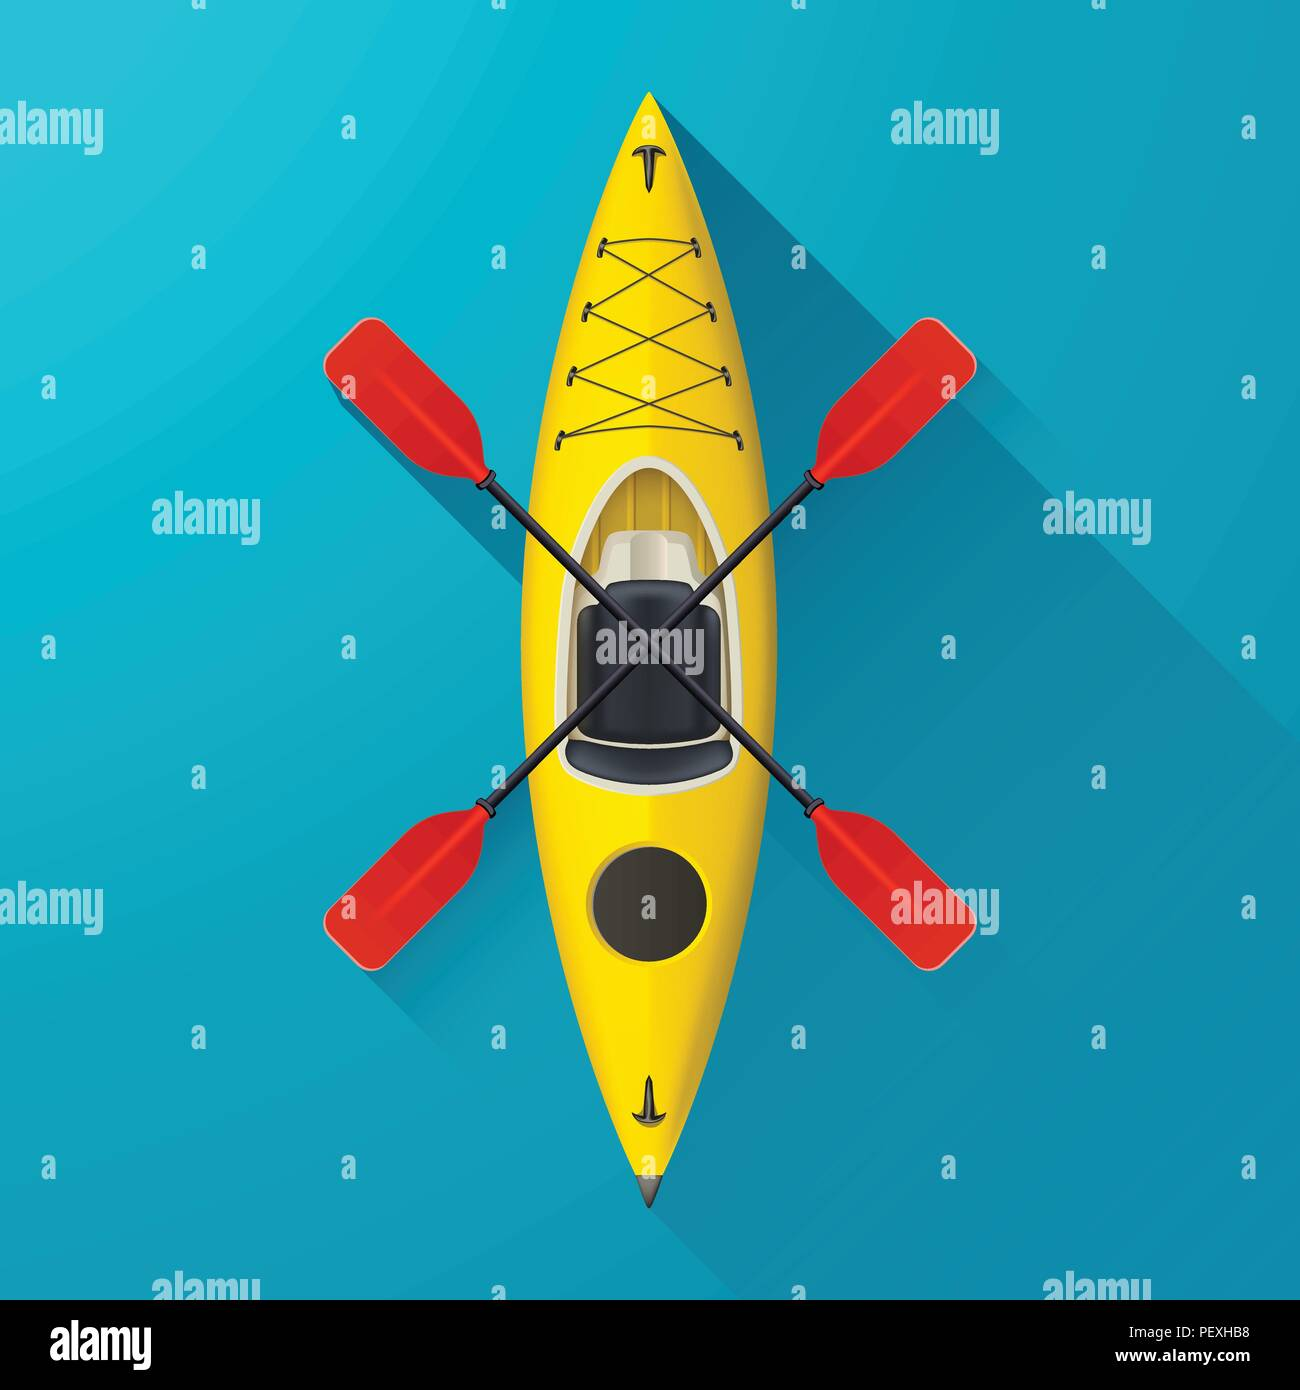 kayak on blue background - Stock Vector